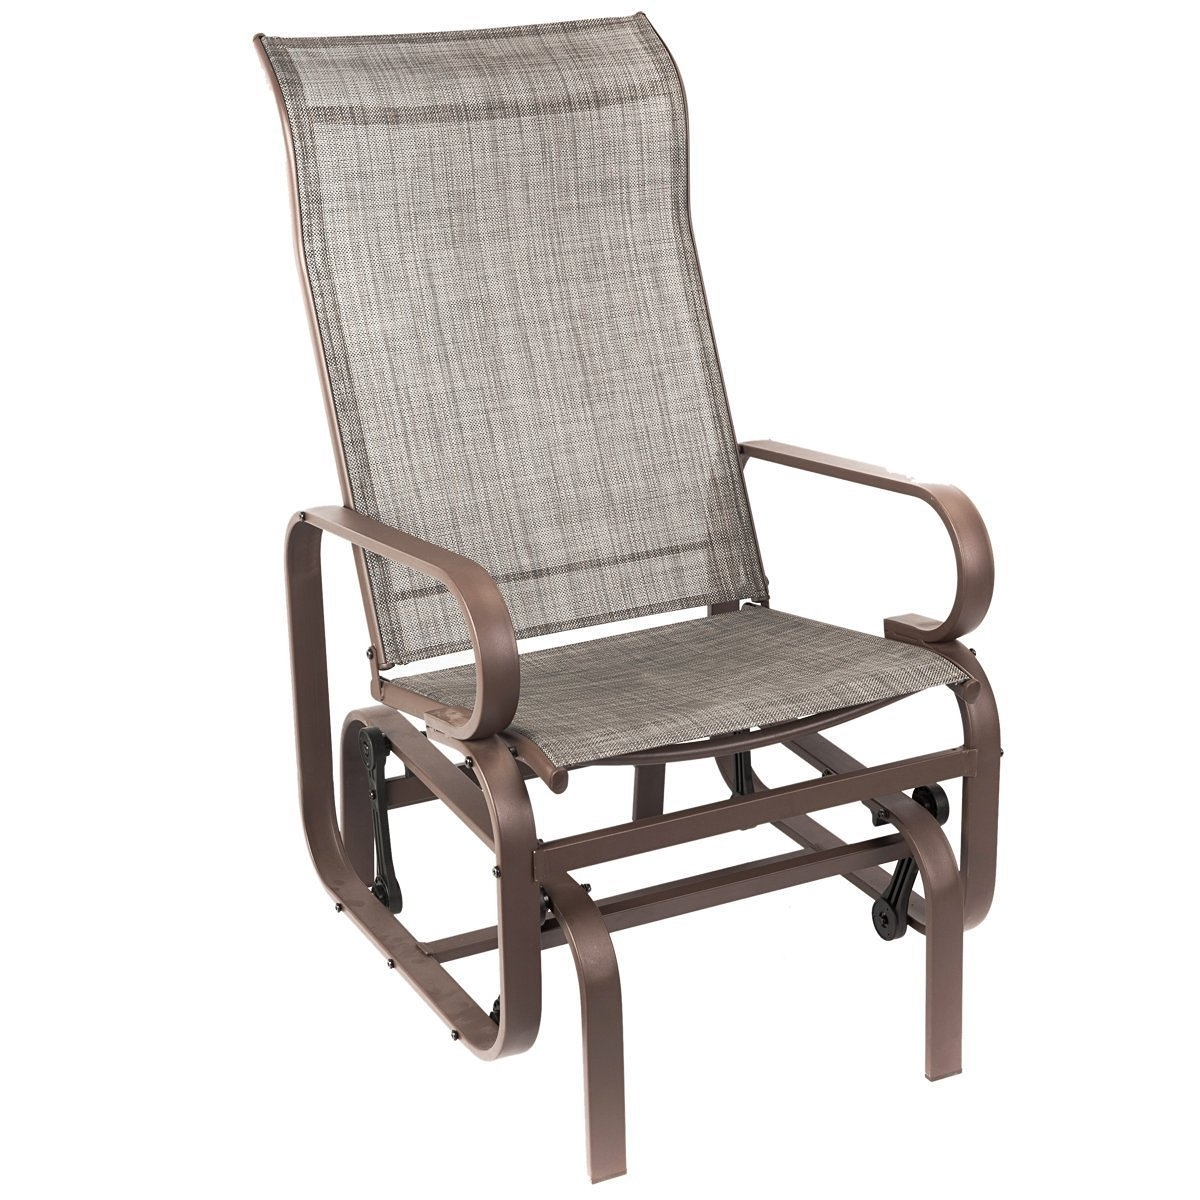 Preferred Stackable Patio Rocking Chairs In Resin Outdoor Patio Rocking Chair – Outdoor Designs (View 11 of 15)